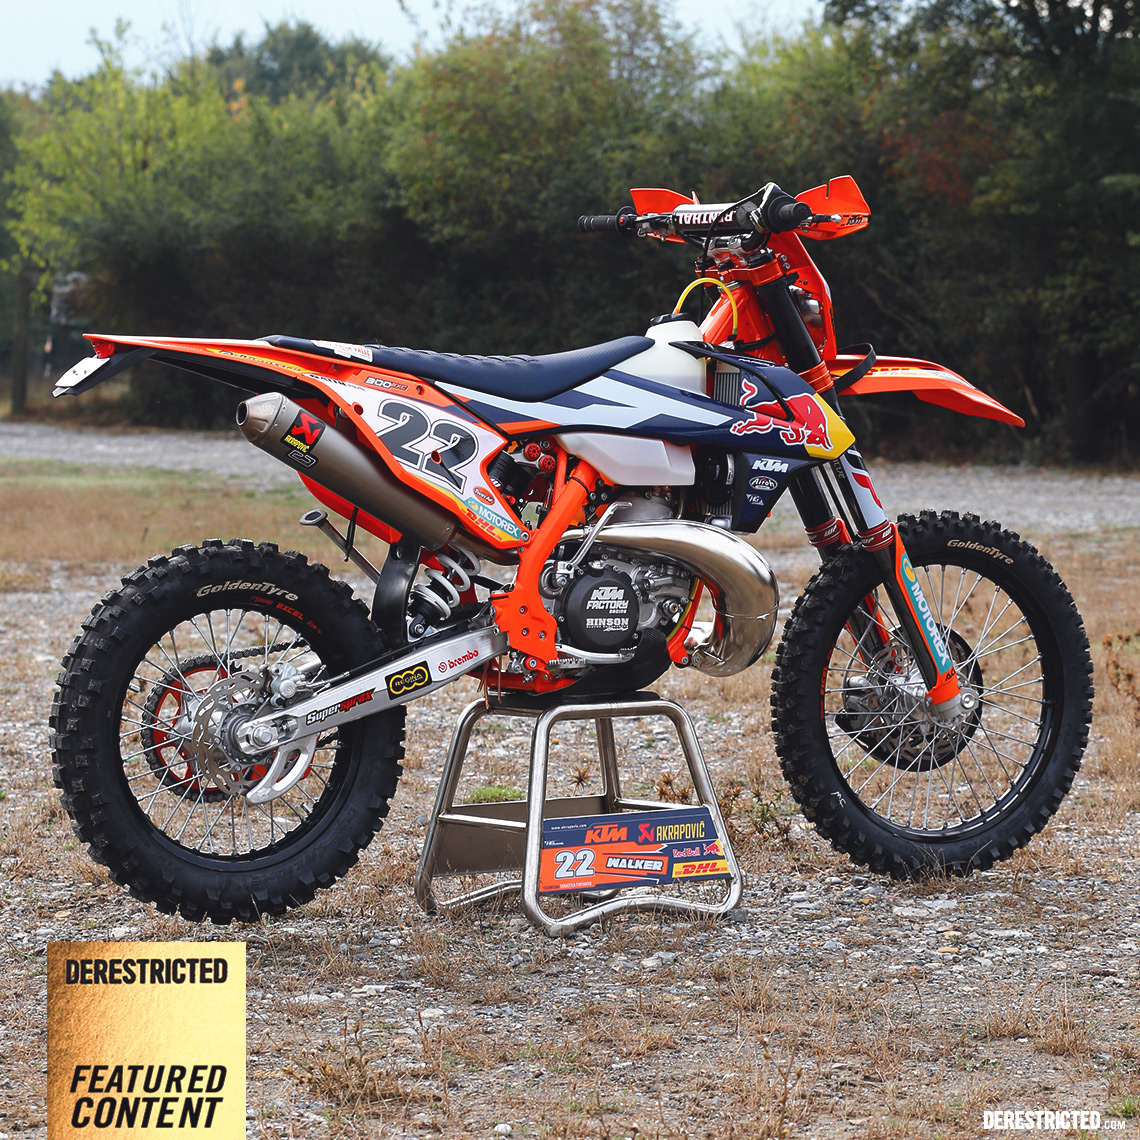 ktm 450 wiring diagram with Wiring Diagram Honda 450 Scrambler on 1604330 Motocrossers get in here furthermore T194 Probleme Pour Demarre likewise 2003 Ktm 125 Sx Fuel Line Diagram Wiring Diagrams as well CB750 EN besides Ford F 450 Wiring Diagrams.